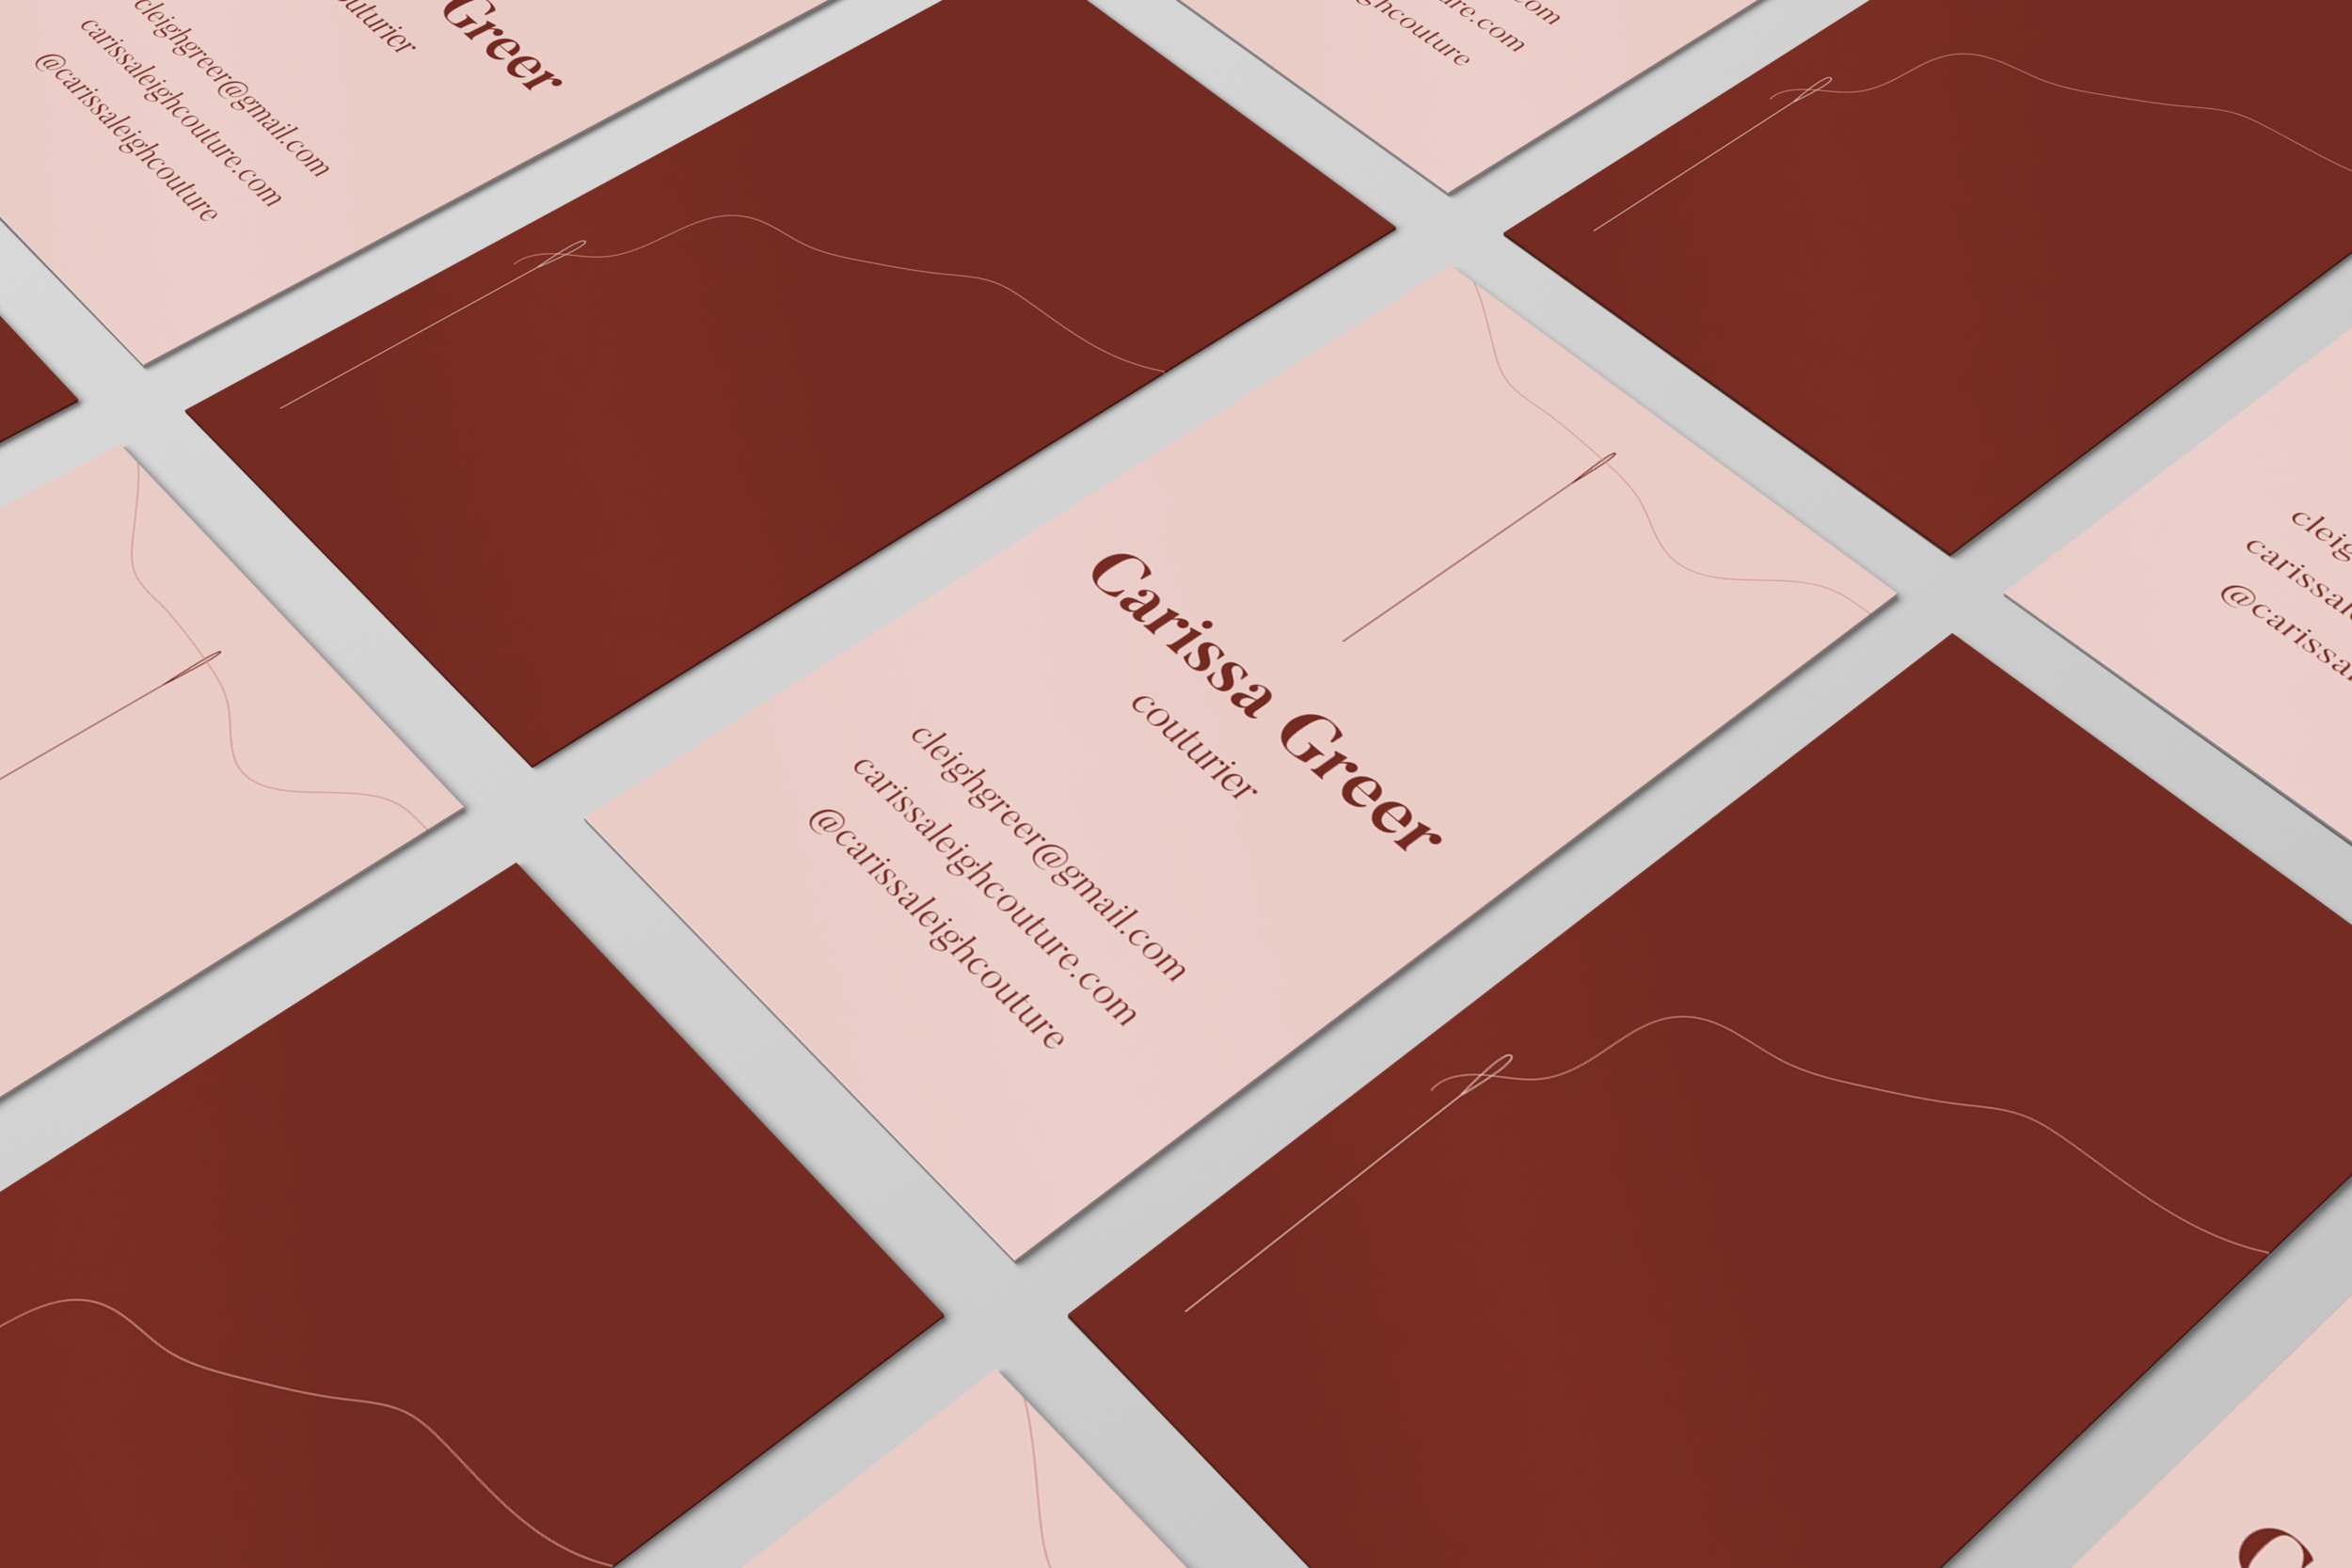 CarissaLeighCouture_BizCard_Mockup_01DEC2018.png